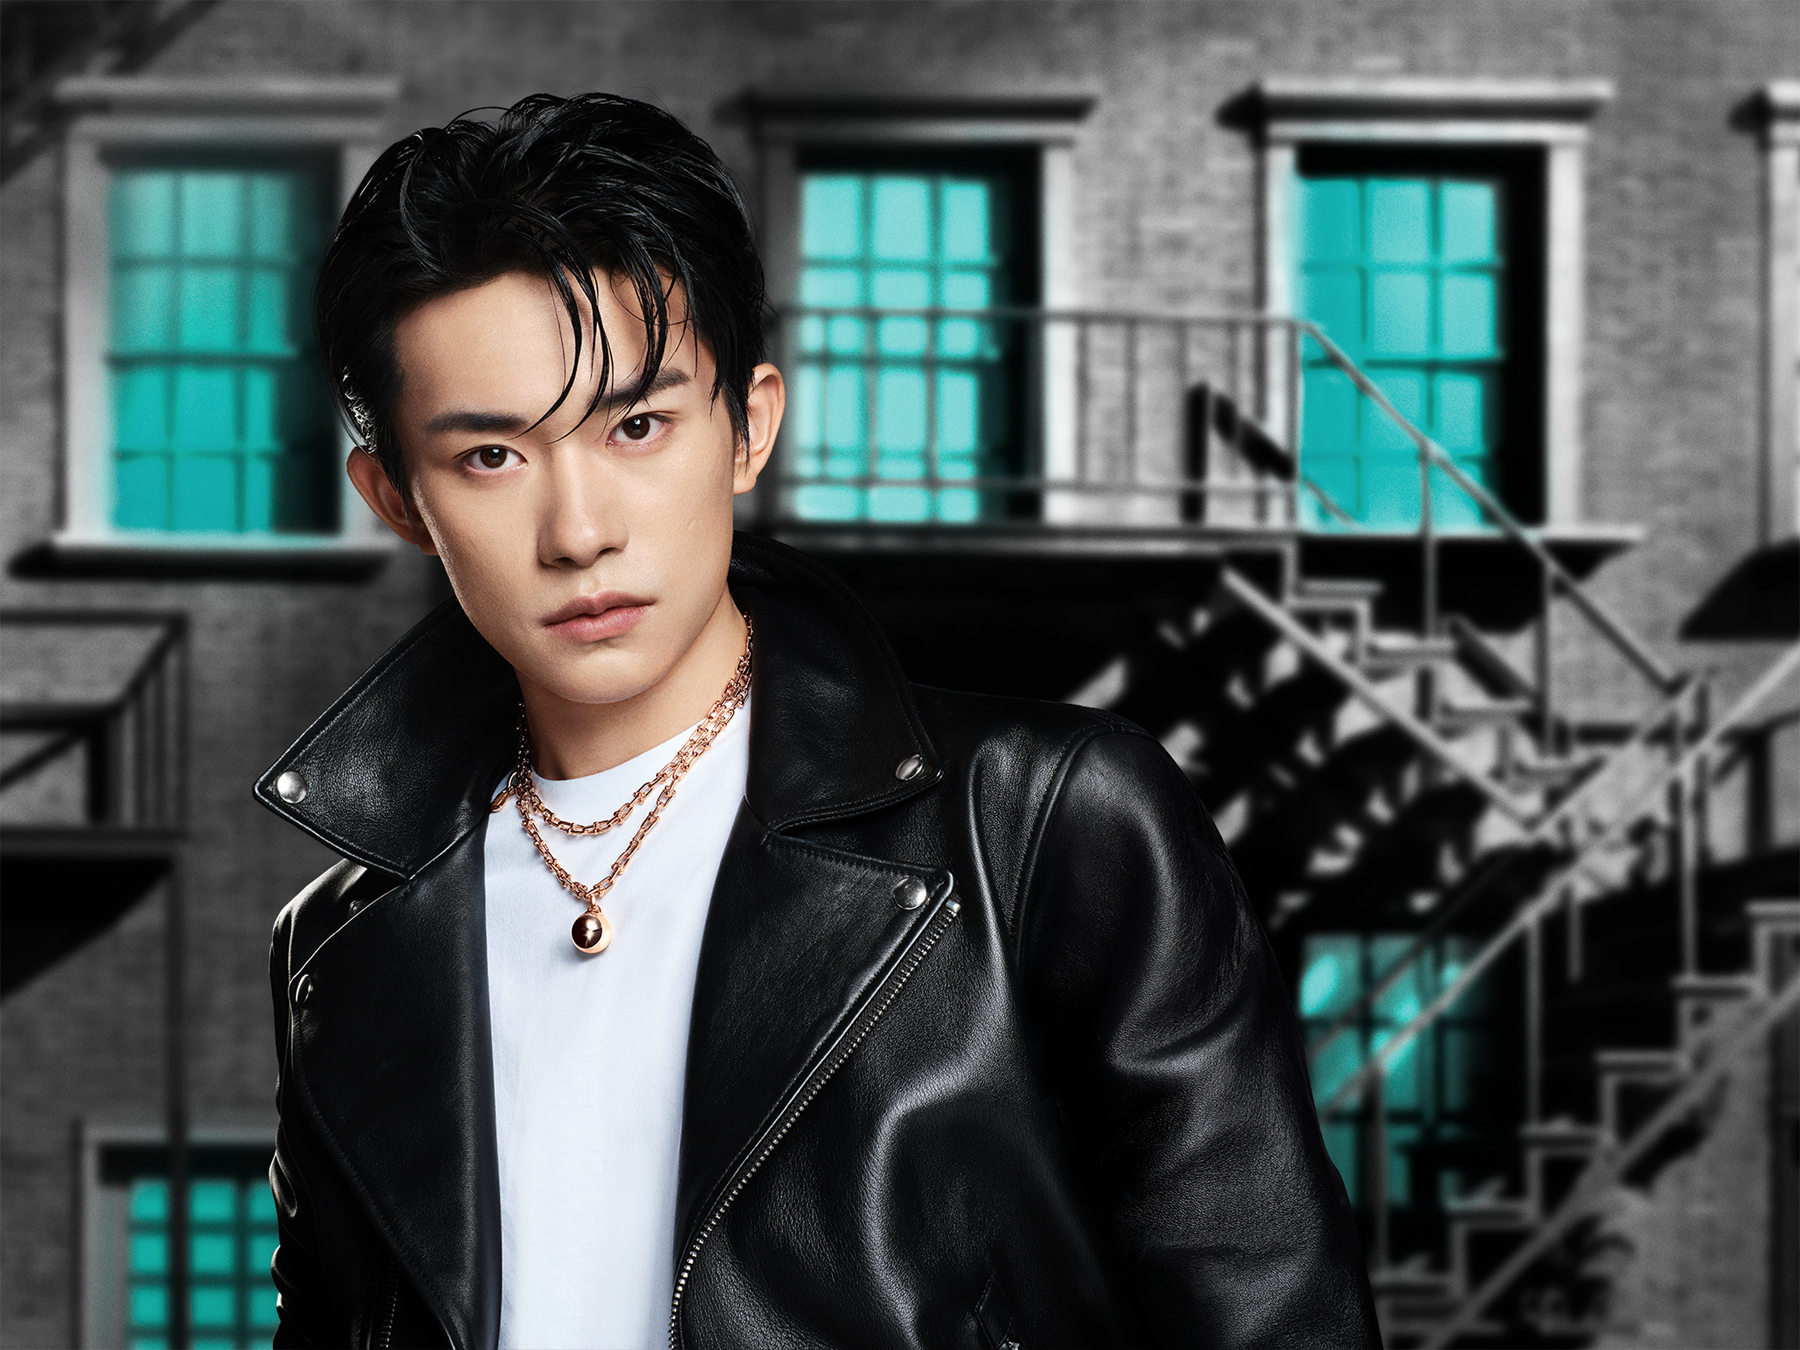 Jackson Yee is the new face of Tiffany & Co.'s T jewelry collection in China.